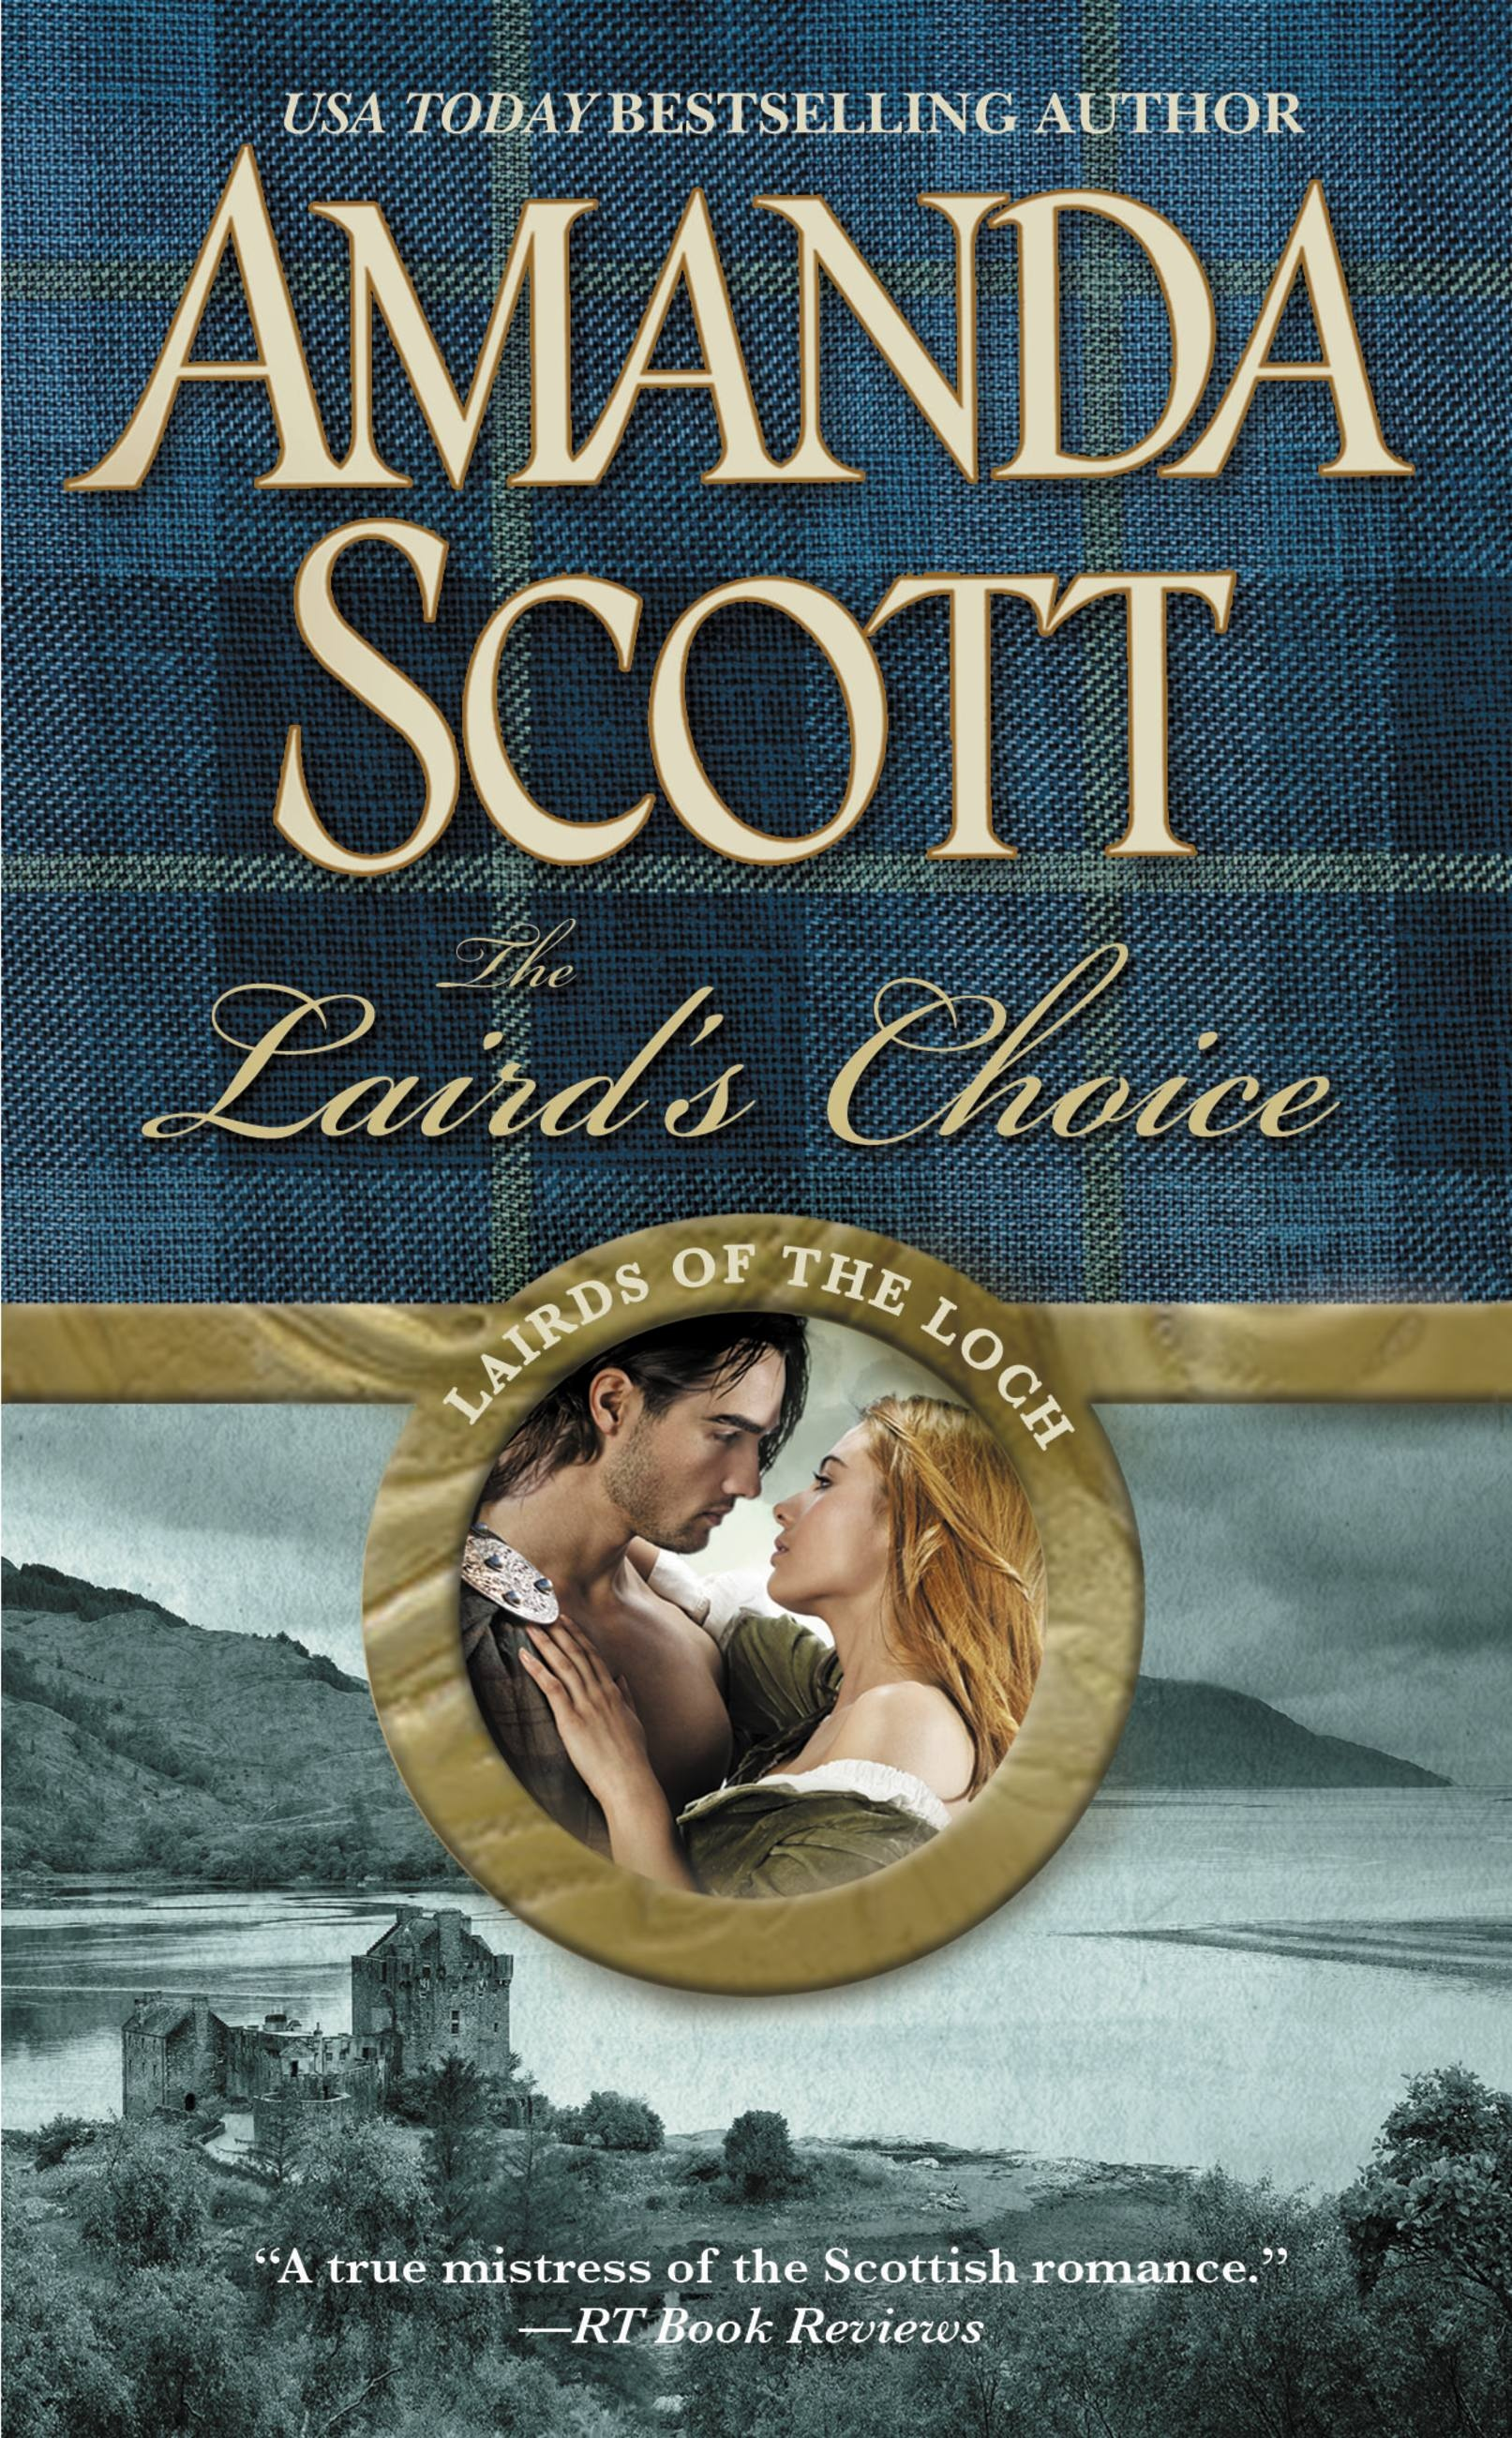 The Laird's Choice